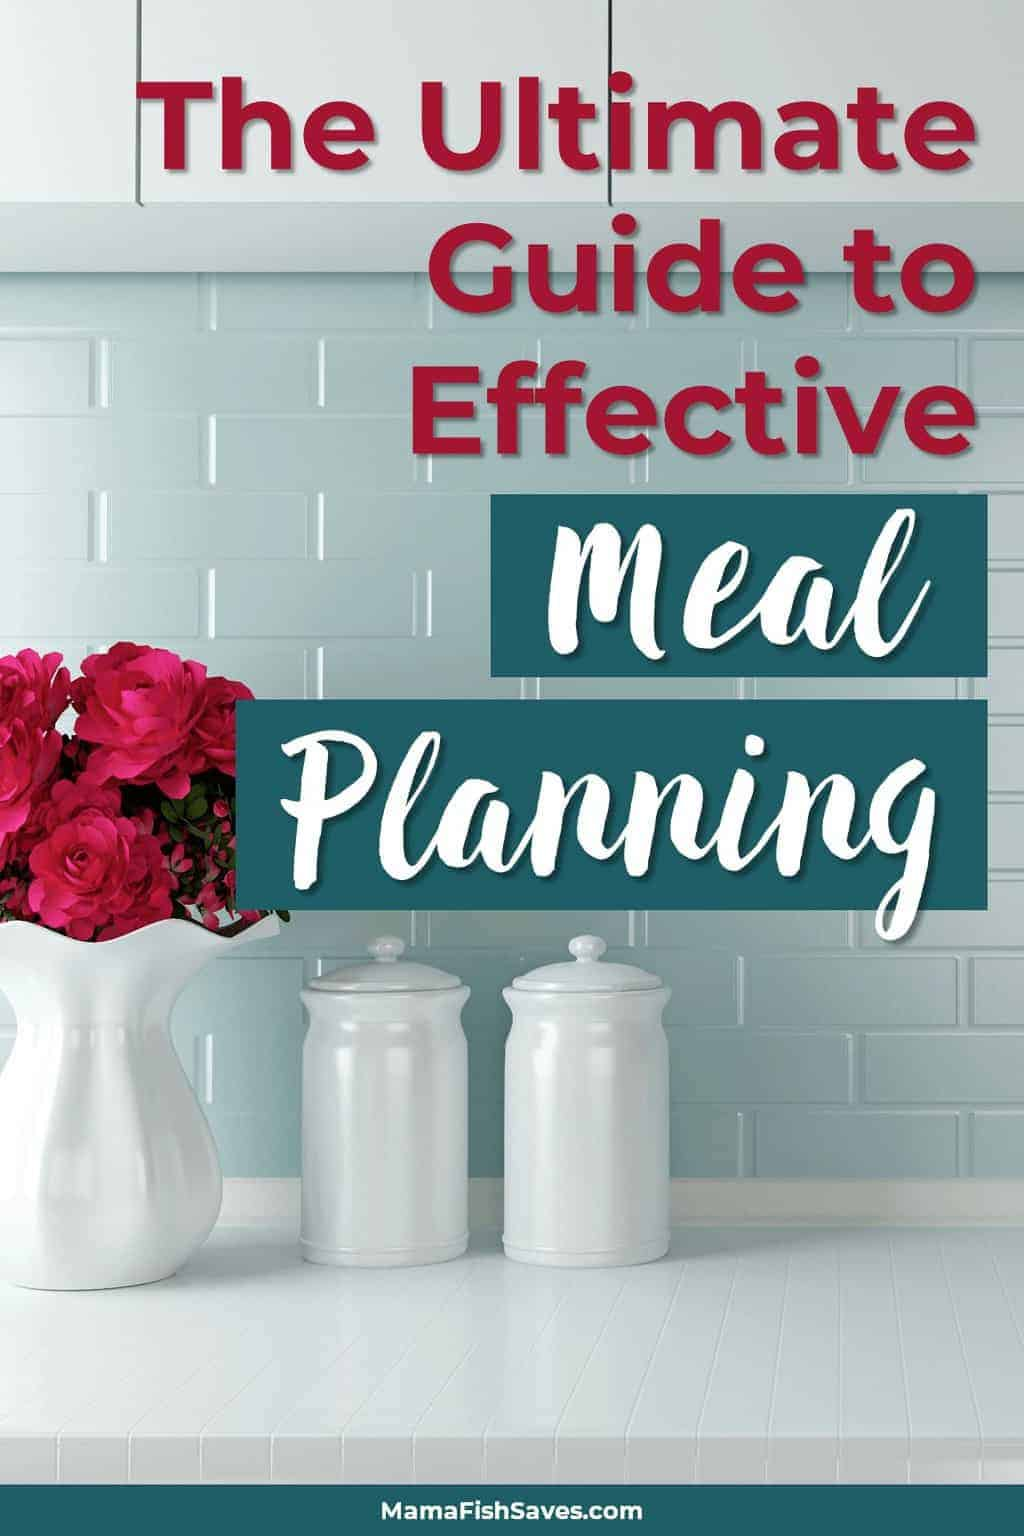 Such a great process for meal planning! I know I should meal plan to save money on groceries but I always lose track. This is a great way to make it part of my routine #groceries #mealplanning #savemoney